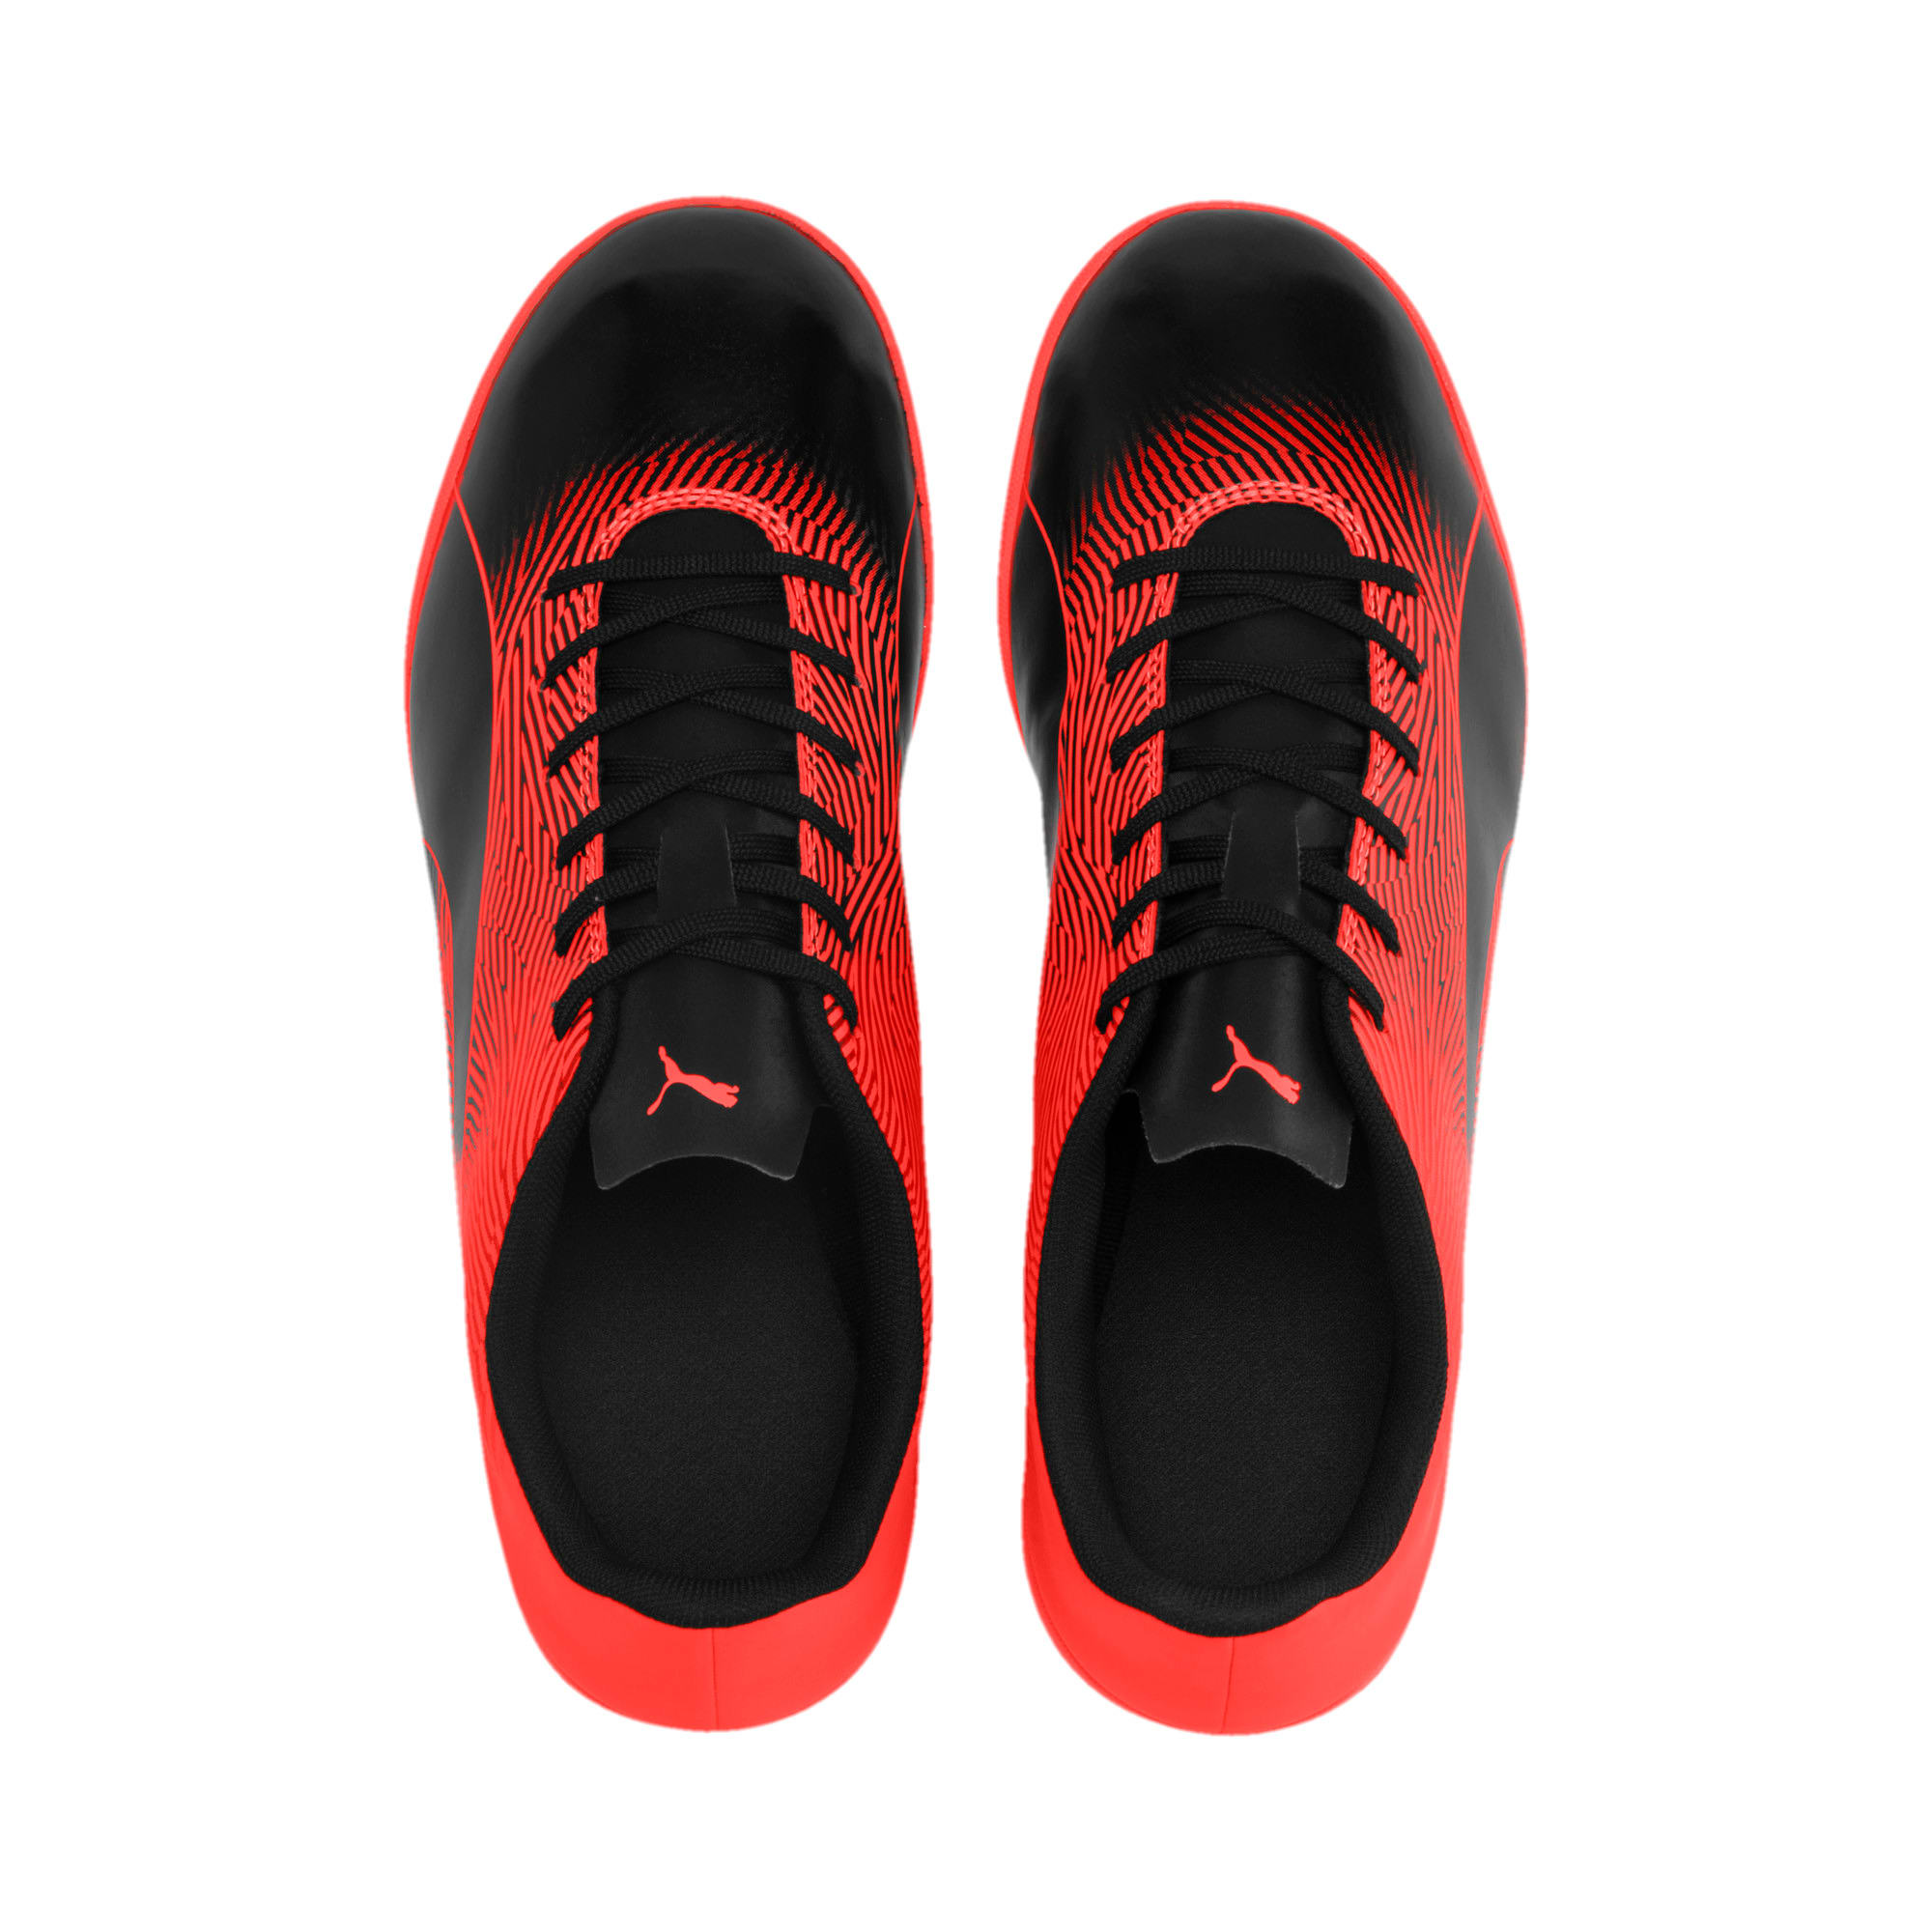 Thumbnail 7 of PUMA Spirit II IT Men's Soccer Shoes, Puma Black-Nrgy Red, medium